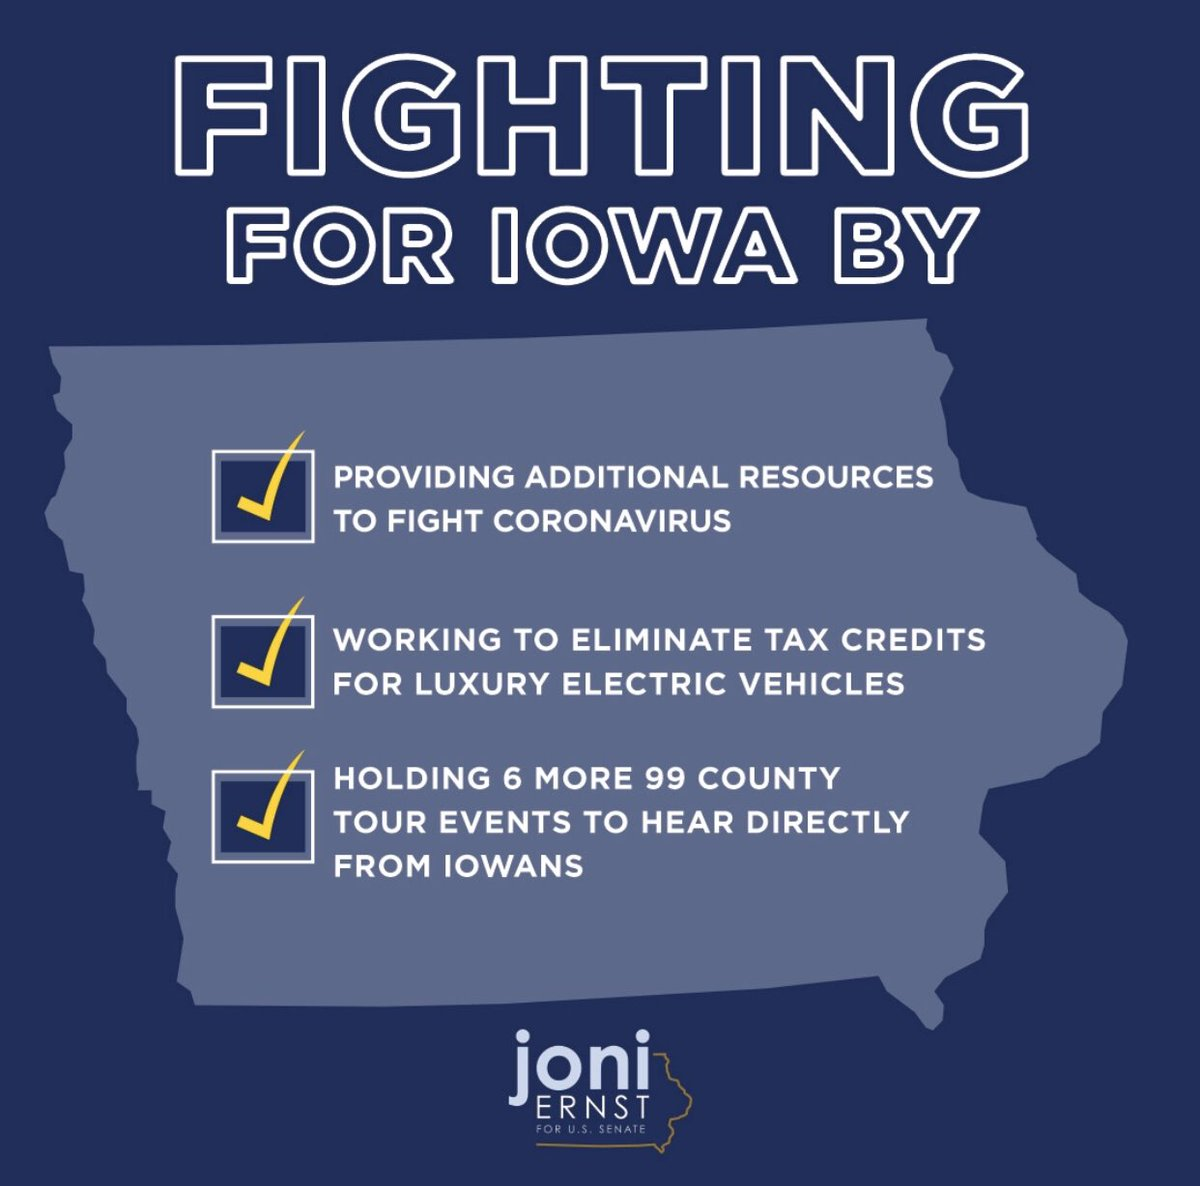 Wrapping up another busy week fighting for Iowa!